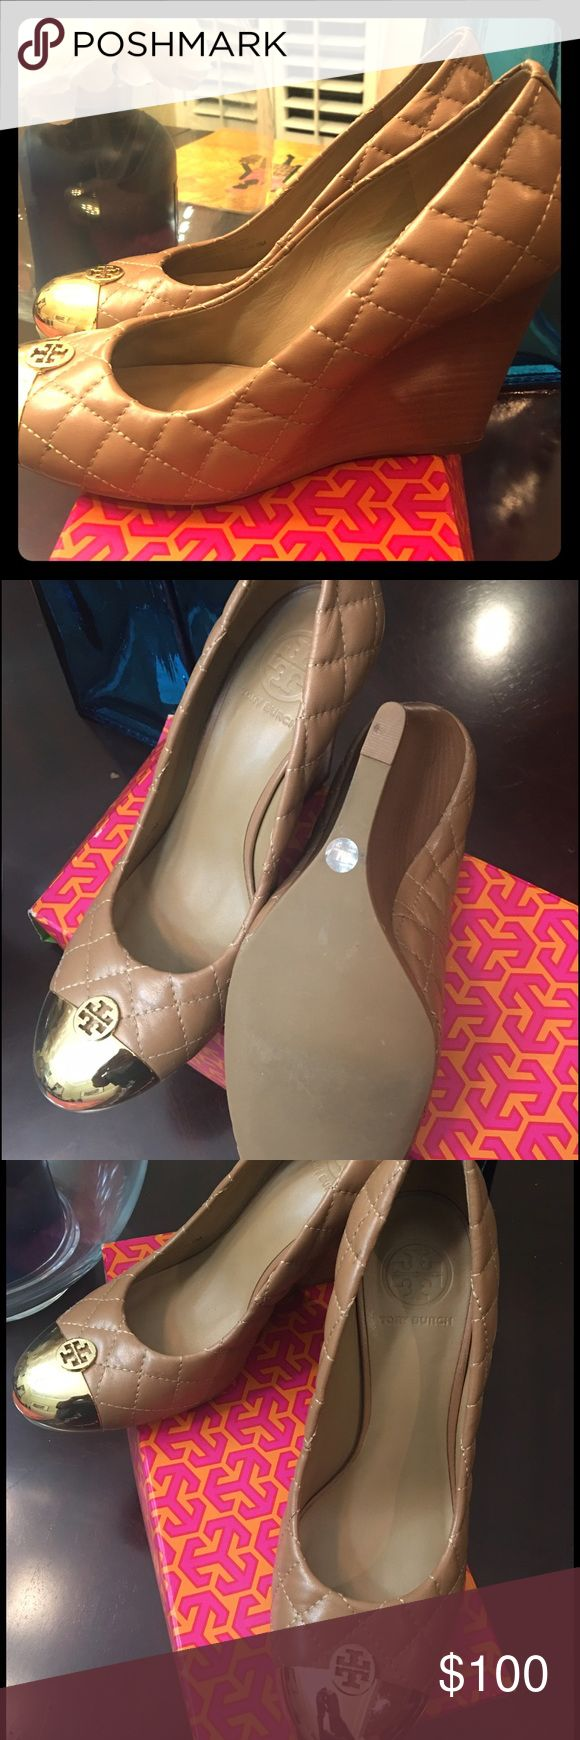 Tory Burch Cream Wedges w/ Gold Toe Authentic Tory Burch Cream Quilted Wedges w/ Gold Toe Tory Burch Shoes Wedges